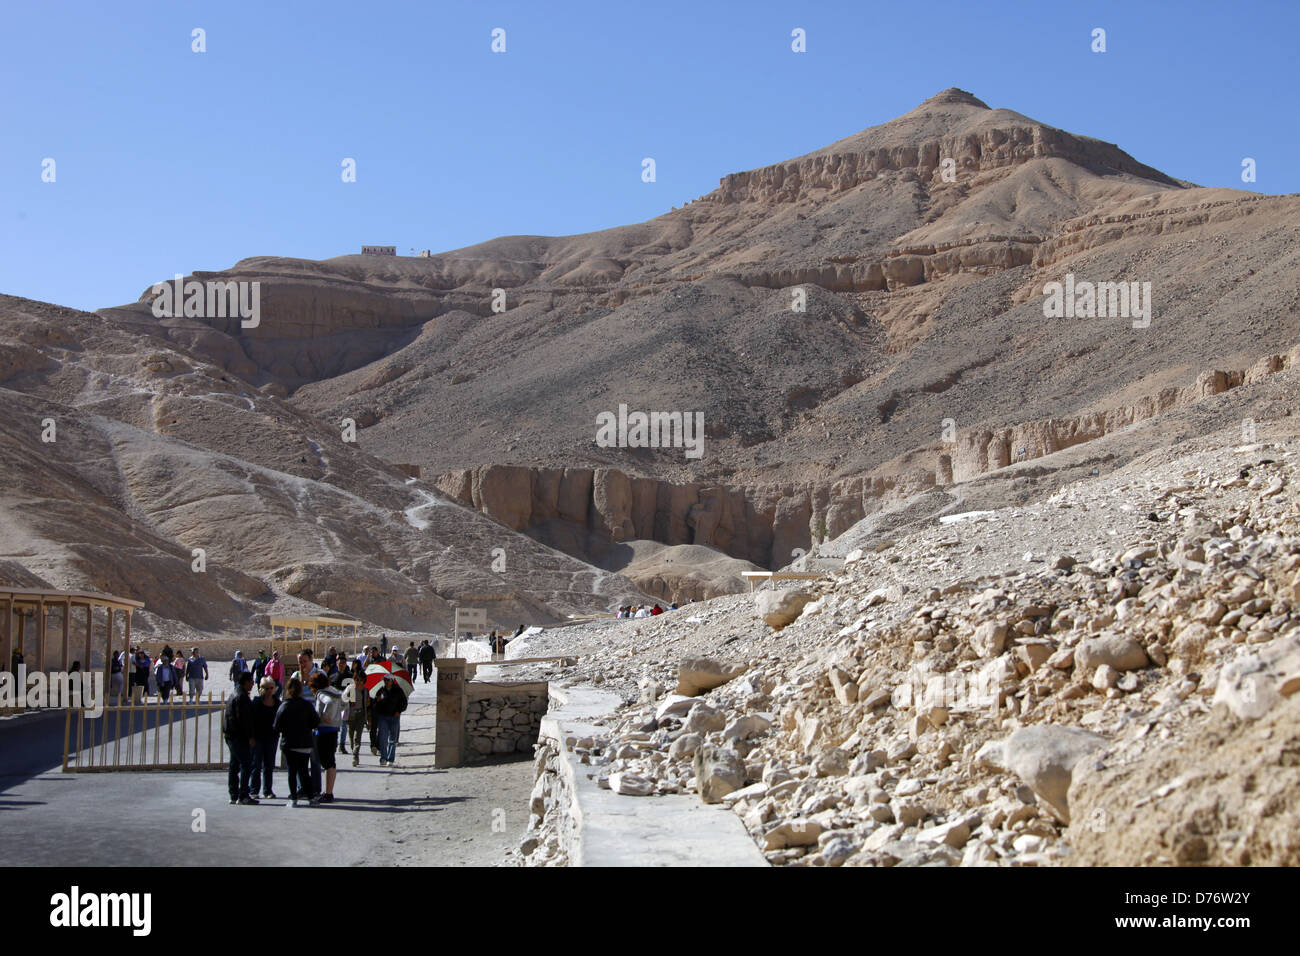 VALLEY OF THE KINGS ENTRANCE & PYRAMID MOUNTAIN WEST BANK LUXOR EGYPT 08 January 2013 - Stock Image